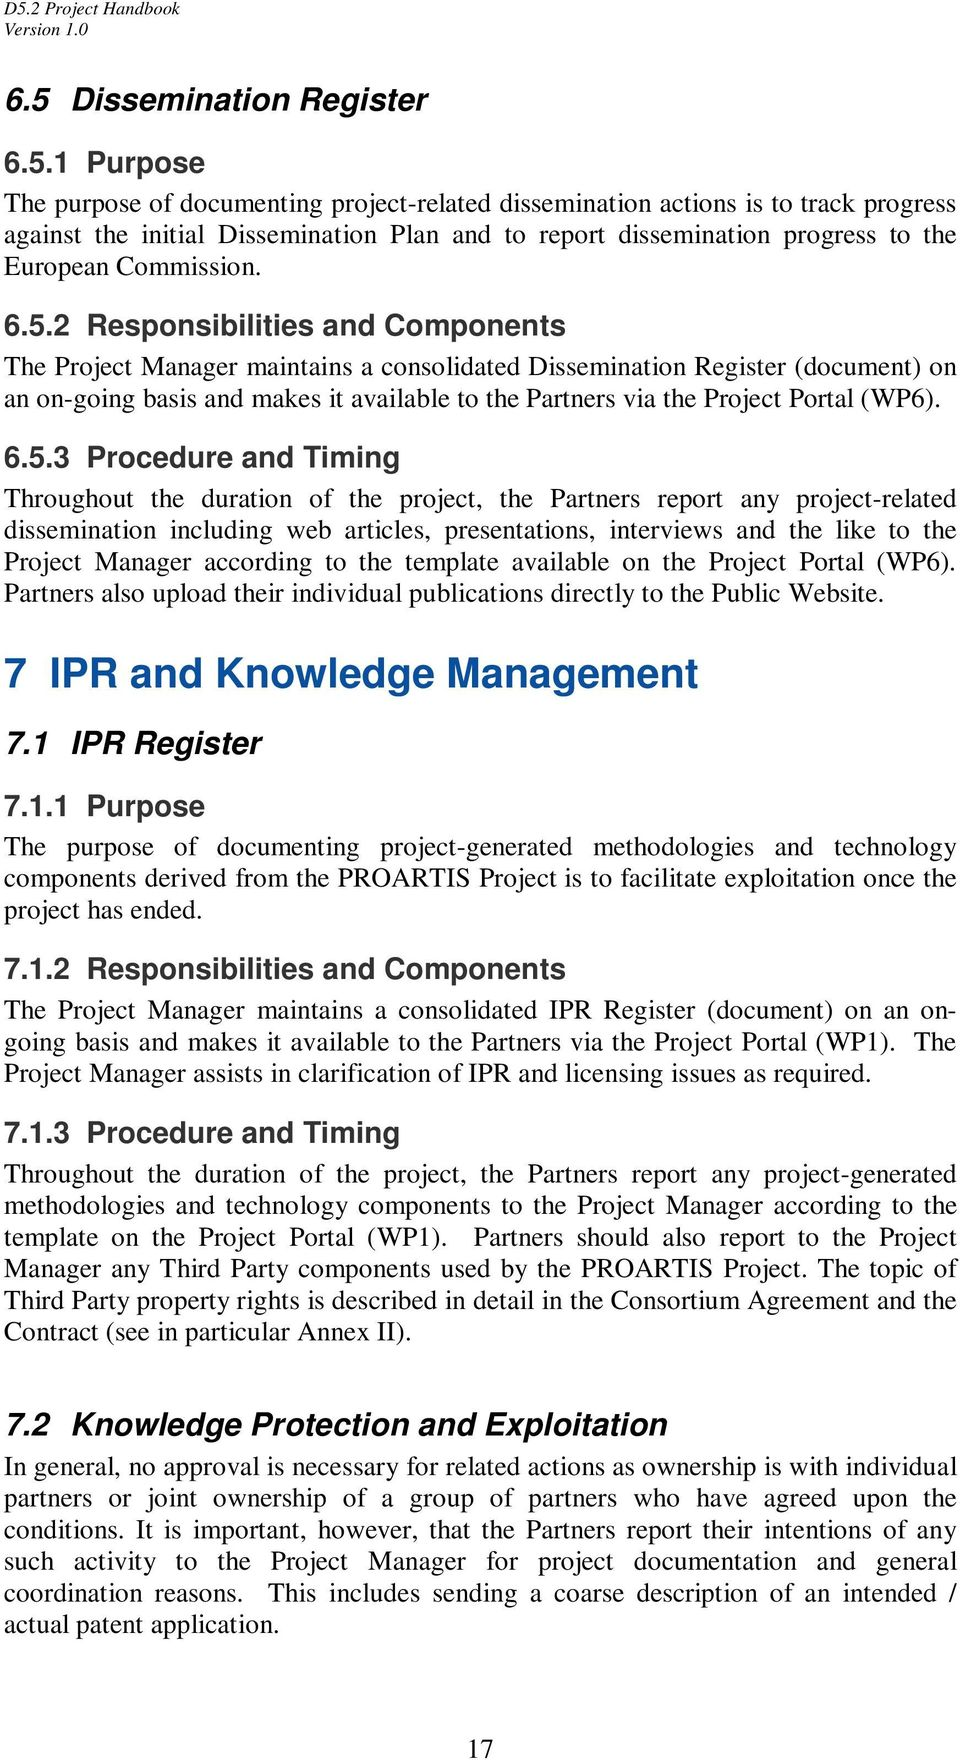 2 Responsibilities and Components The Project Manager maintains a consolidated Dissemination Register (document) on an on-going basis and makes it available to the Partners via the Project Portal